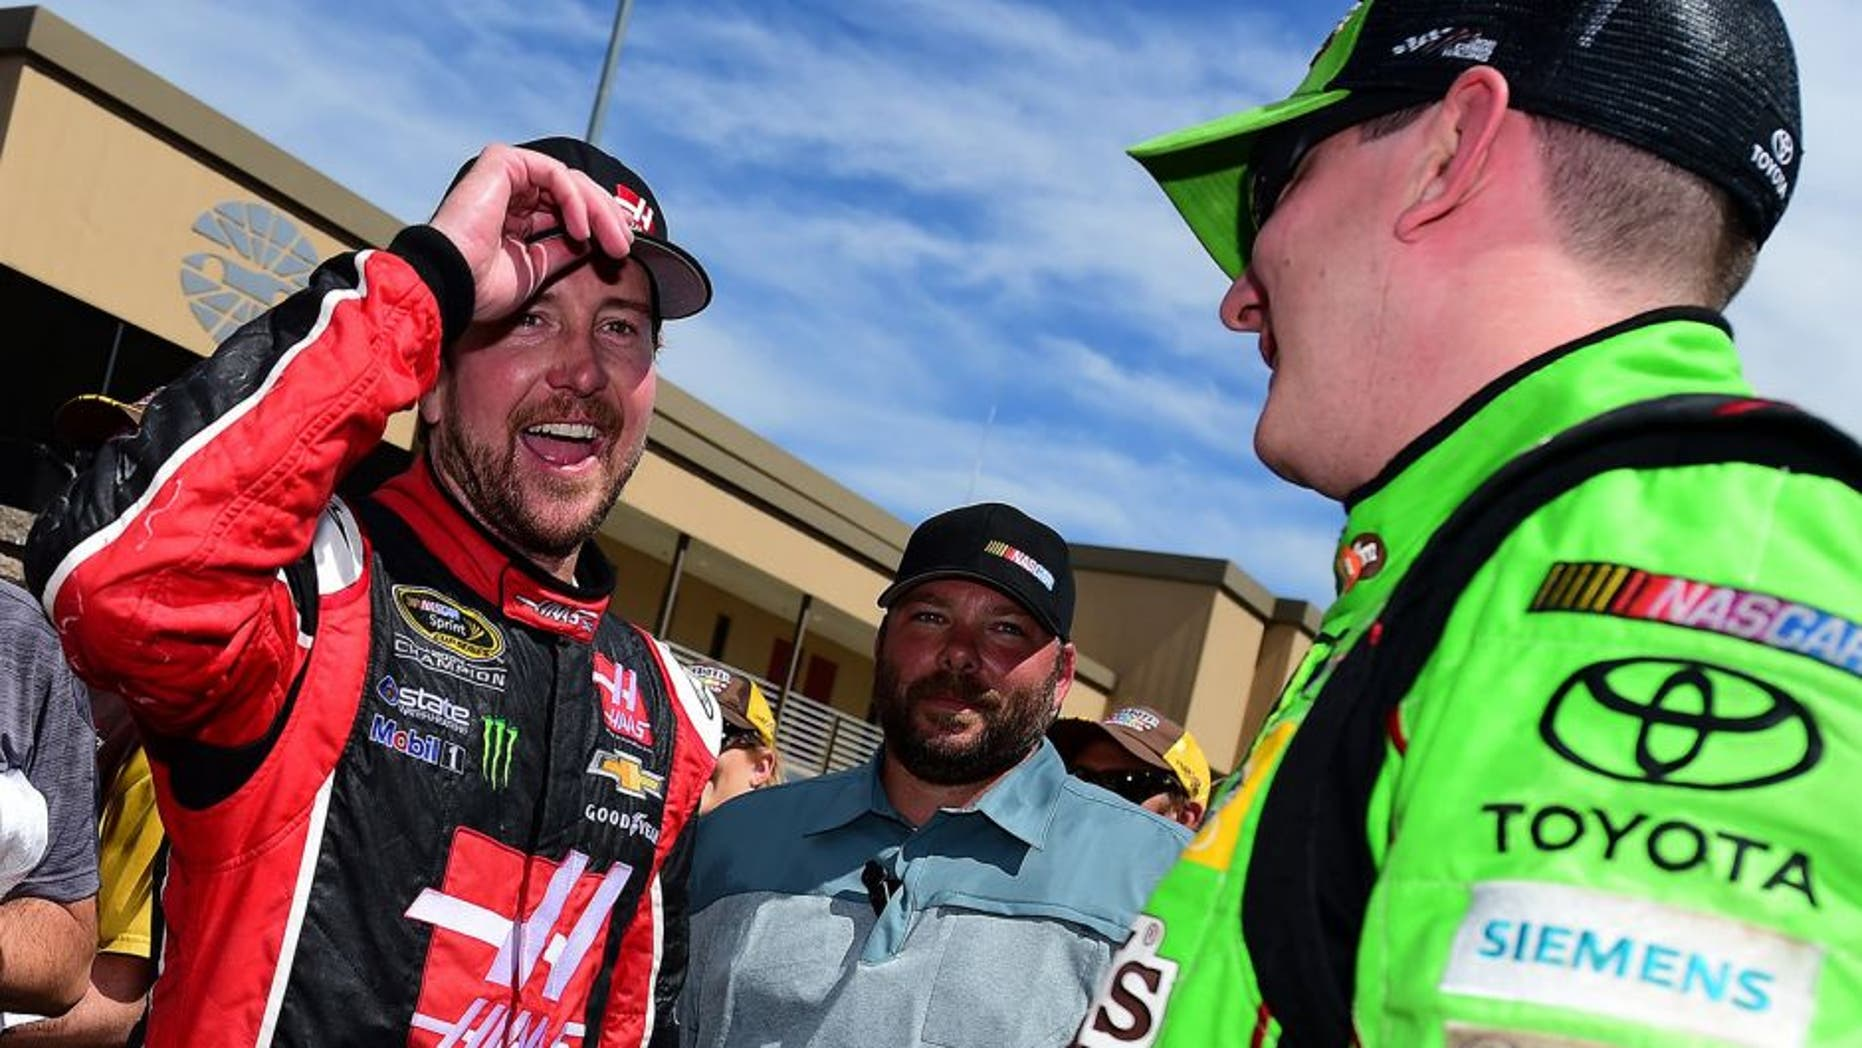 SONOMA, CA - JUNE 28: Kurt Busch, driver of the #41 Haas Automation Chevrolet, congratulates Kyle Busch, driver of the #18 M&M's Crispy Toyota, after winning the NASCAR Sprint Cup Series Toyota/Save Mart 350 at Sonoma Raceway on June 28, 2015 in Sonoma, California. (Photo by Jared C. Tilton/Getty Images)